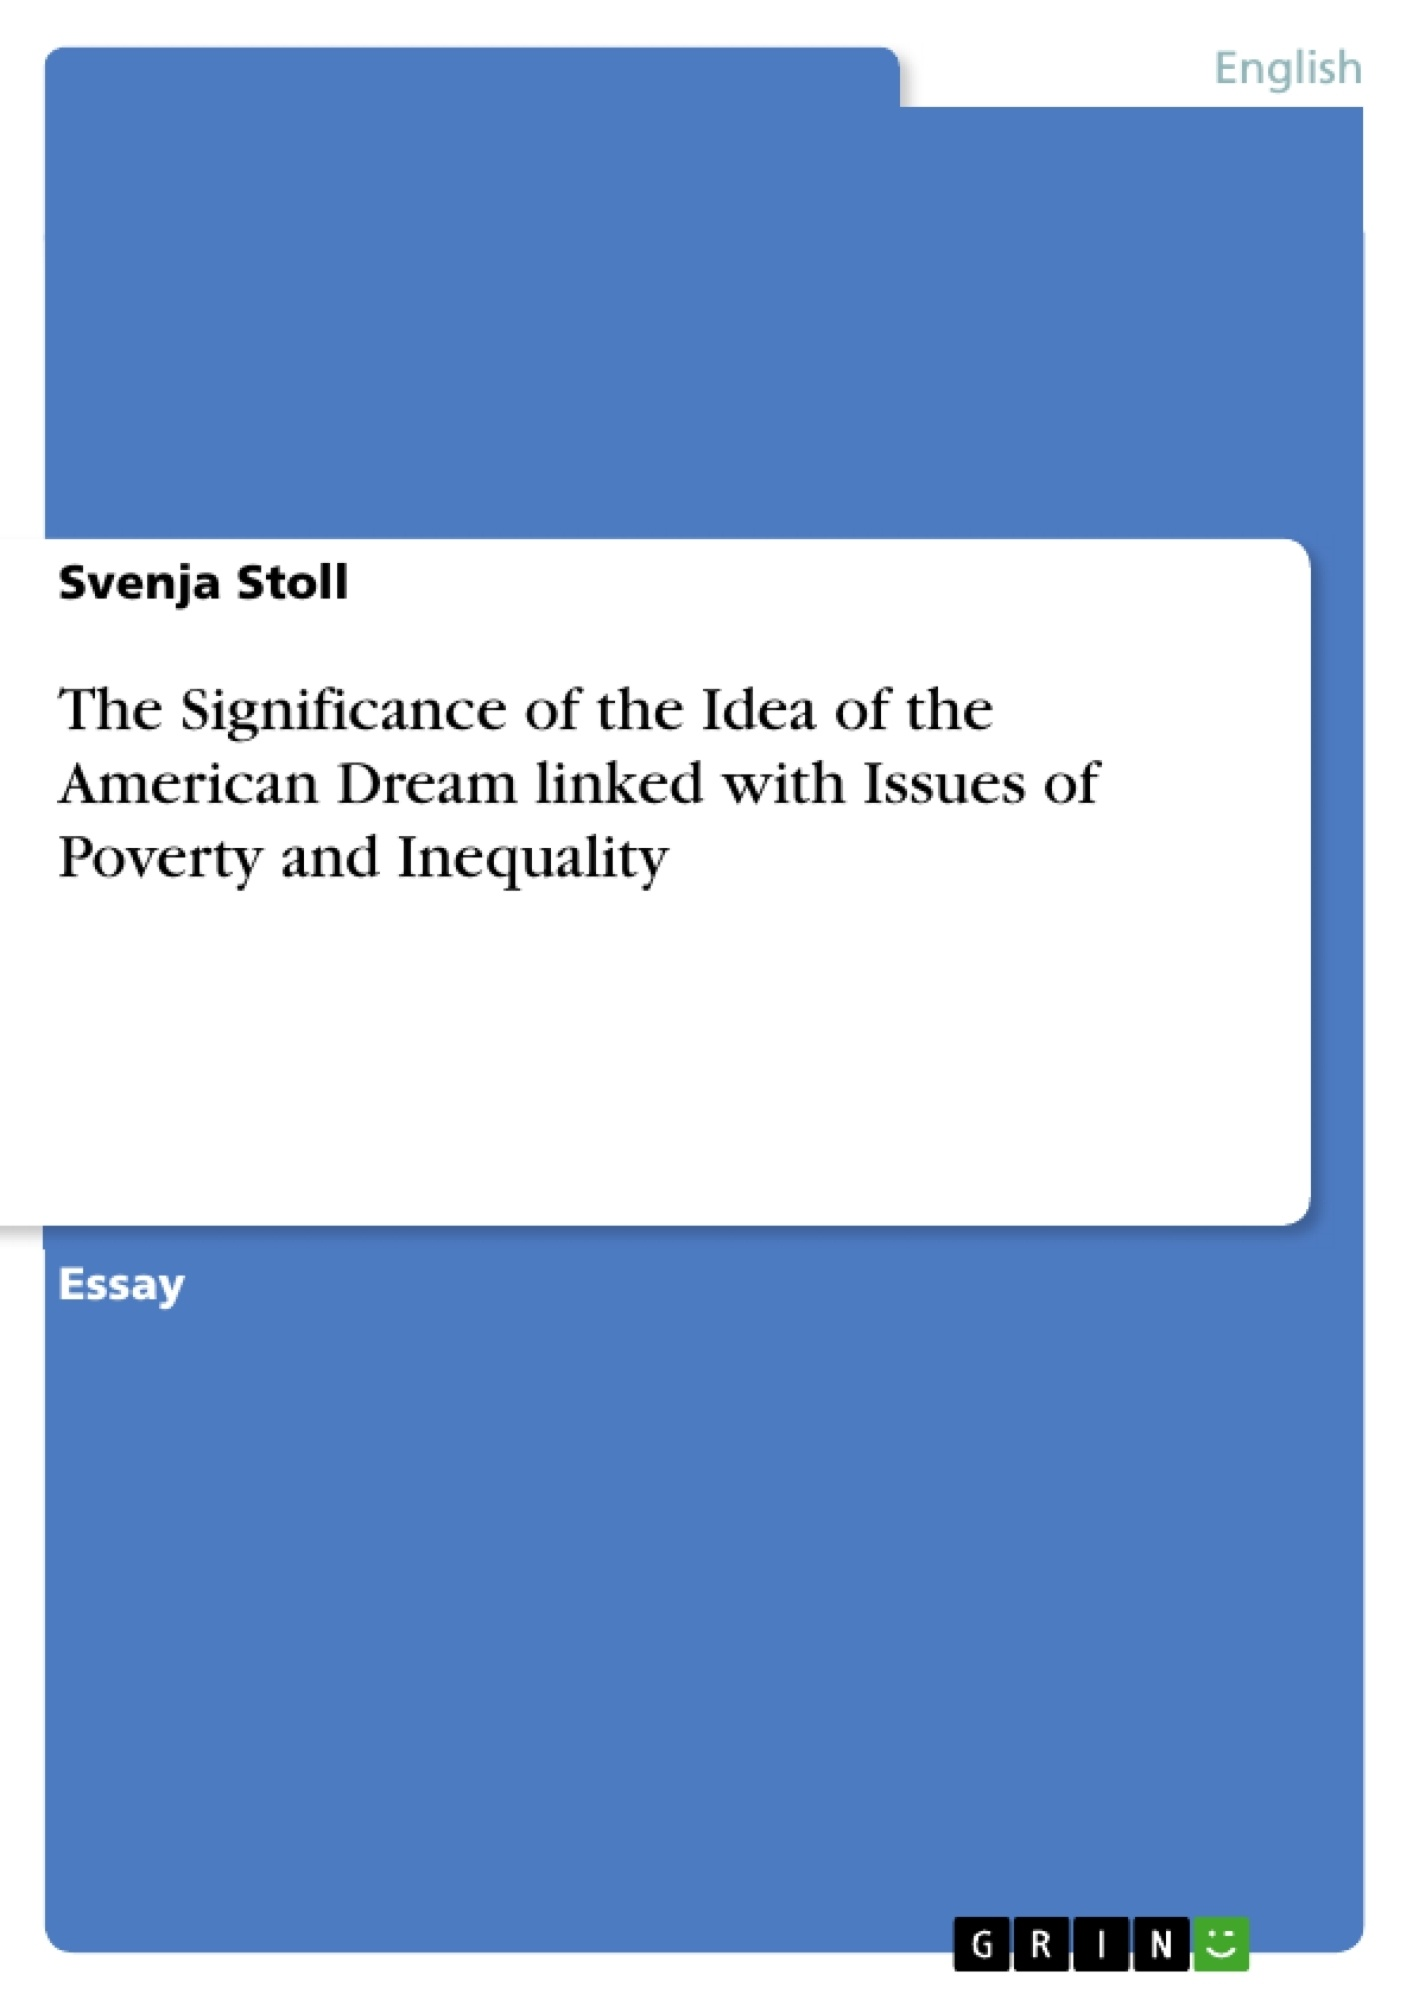 Title: The Significance of the Idea of the American Dream linked with Issues of Poverty and Inequality